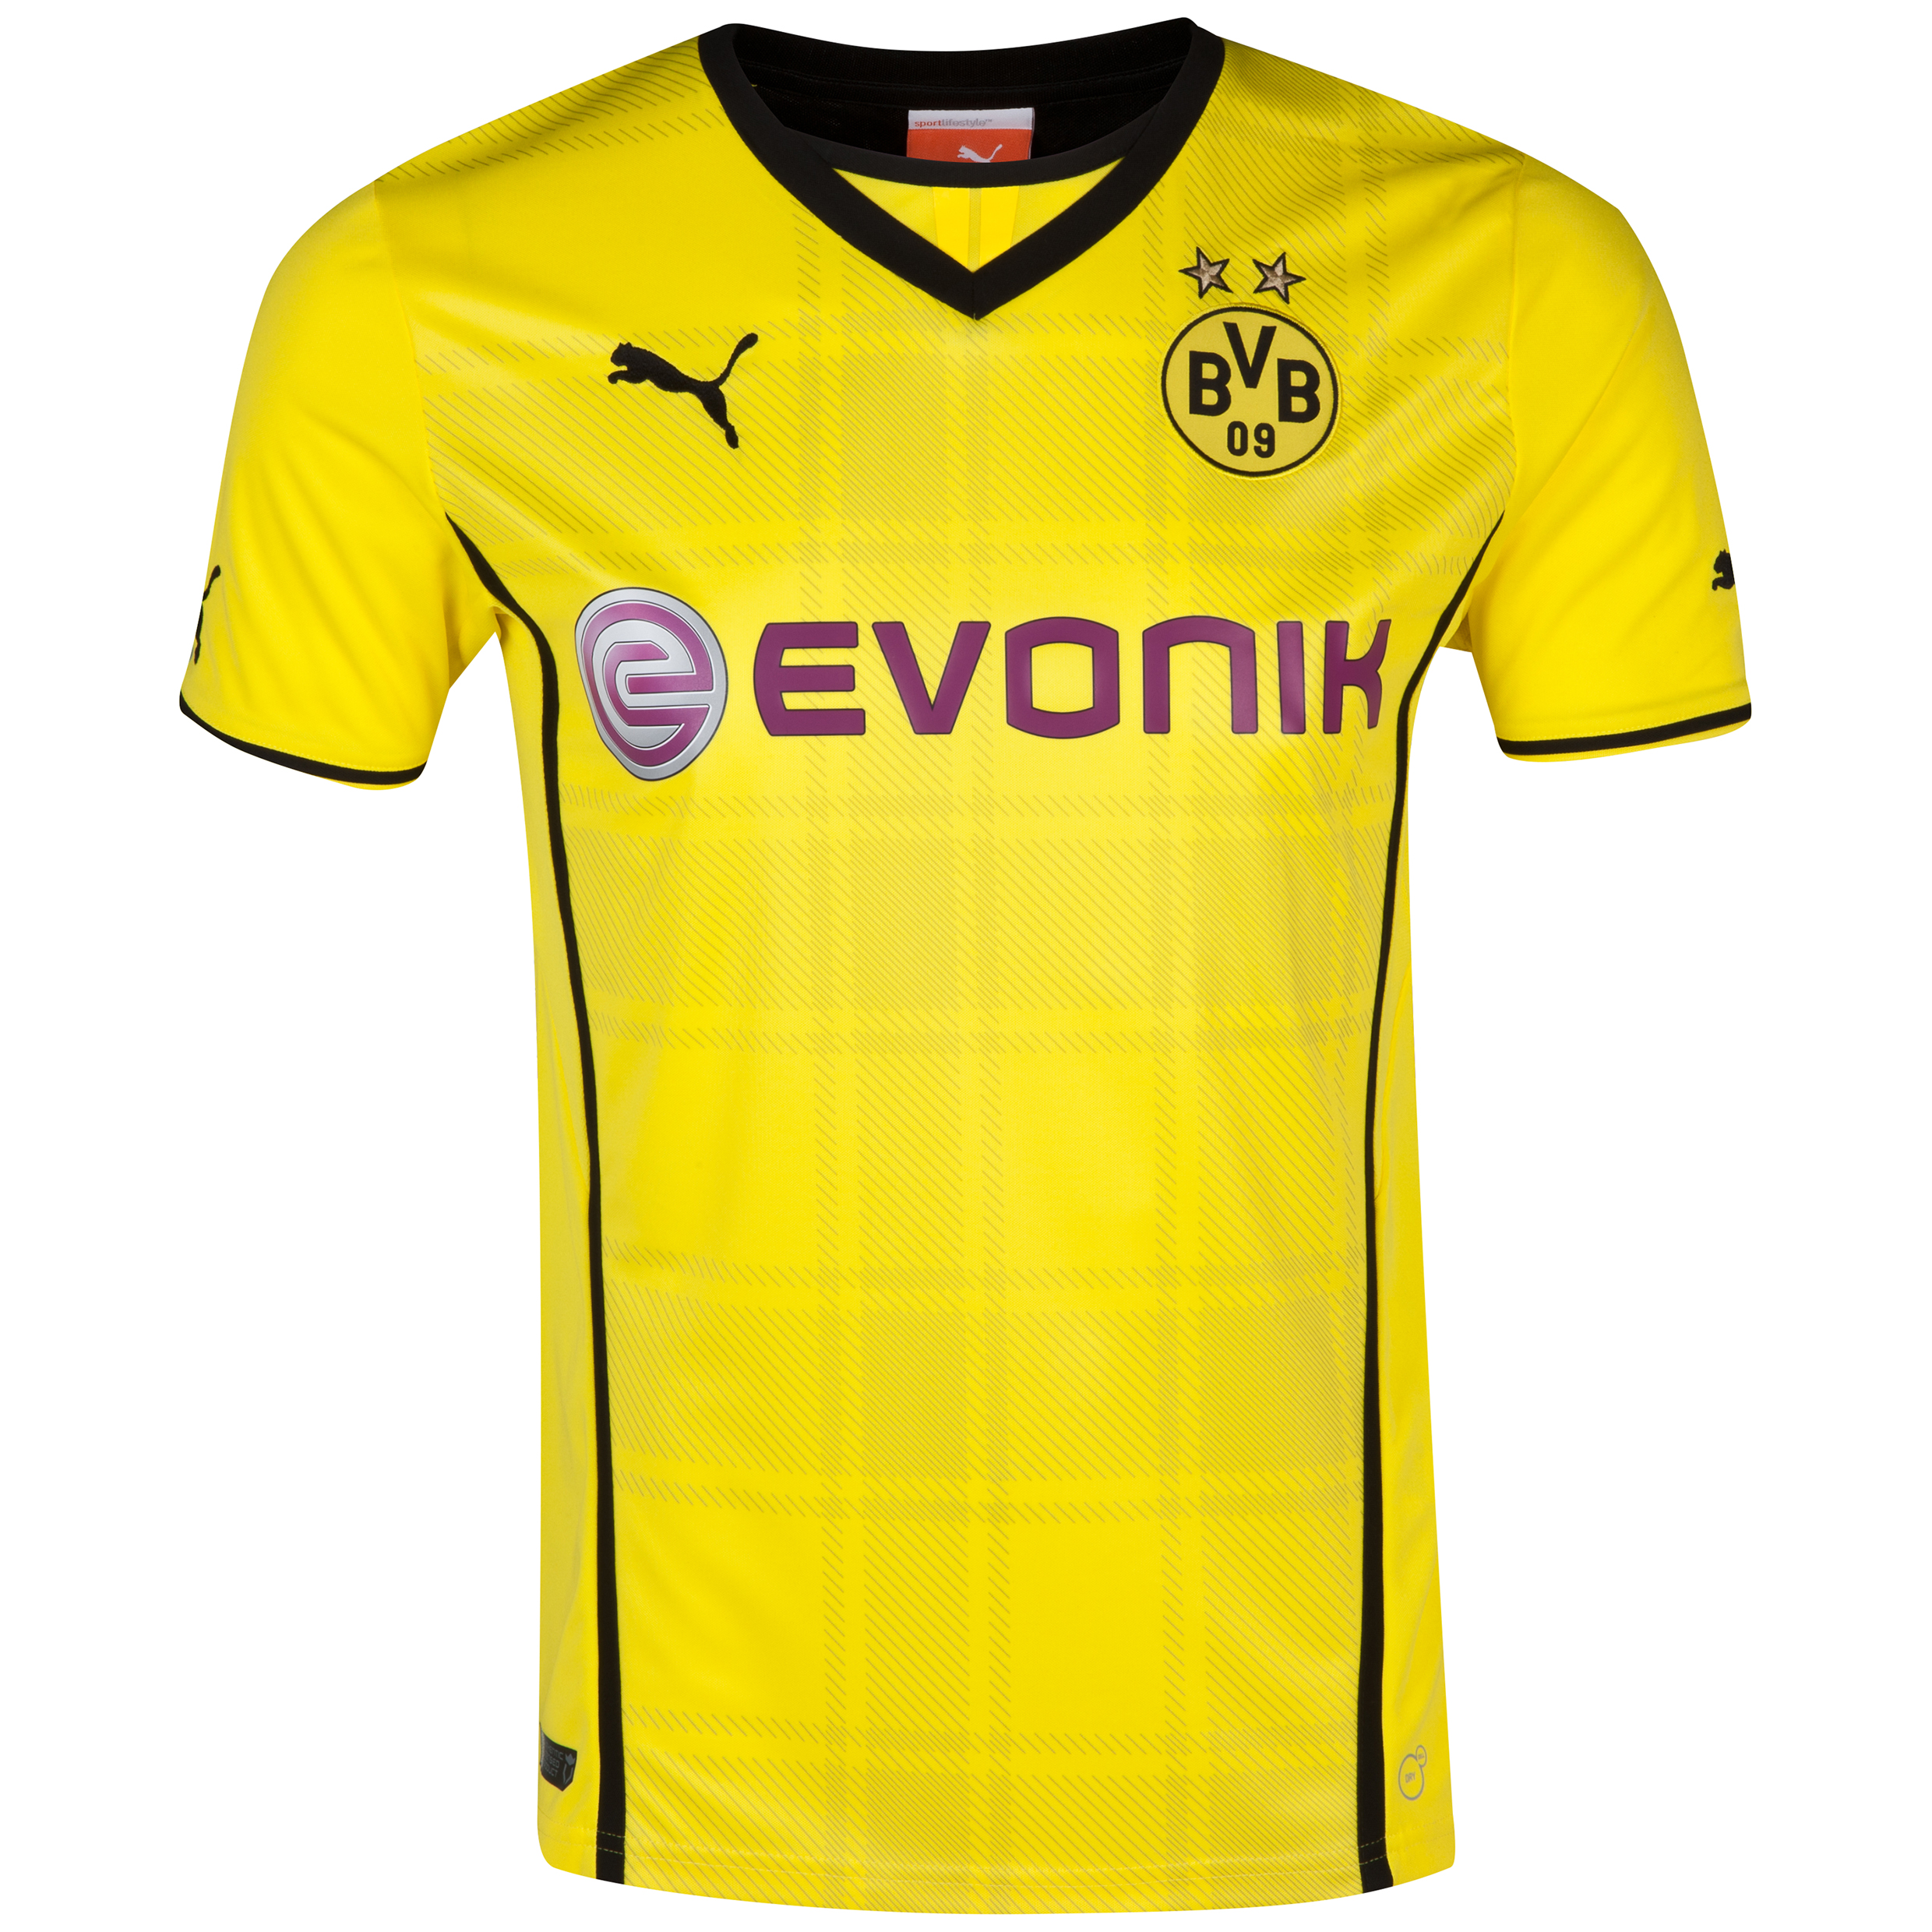 BVB Home Shirt 2013/14